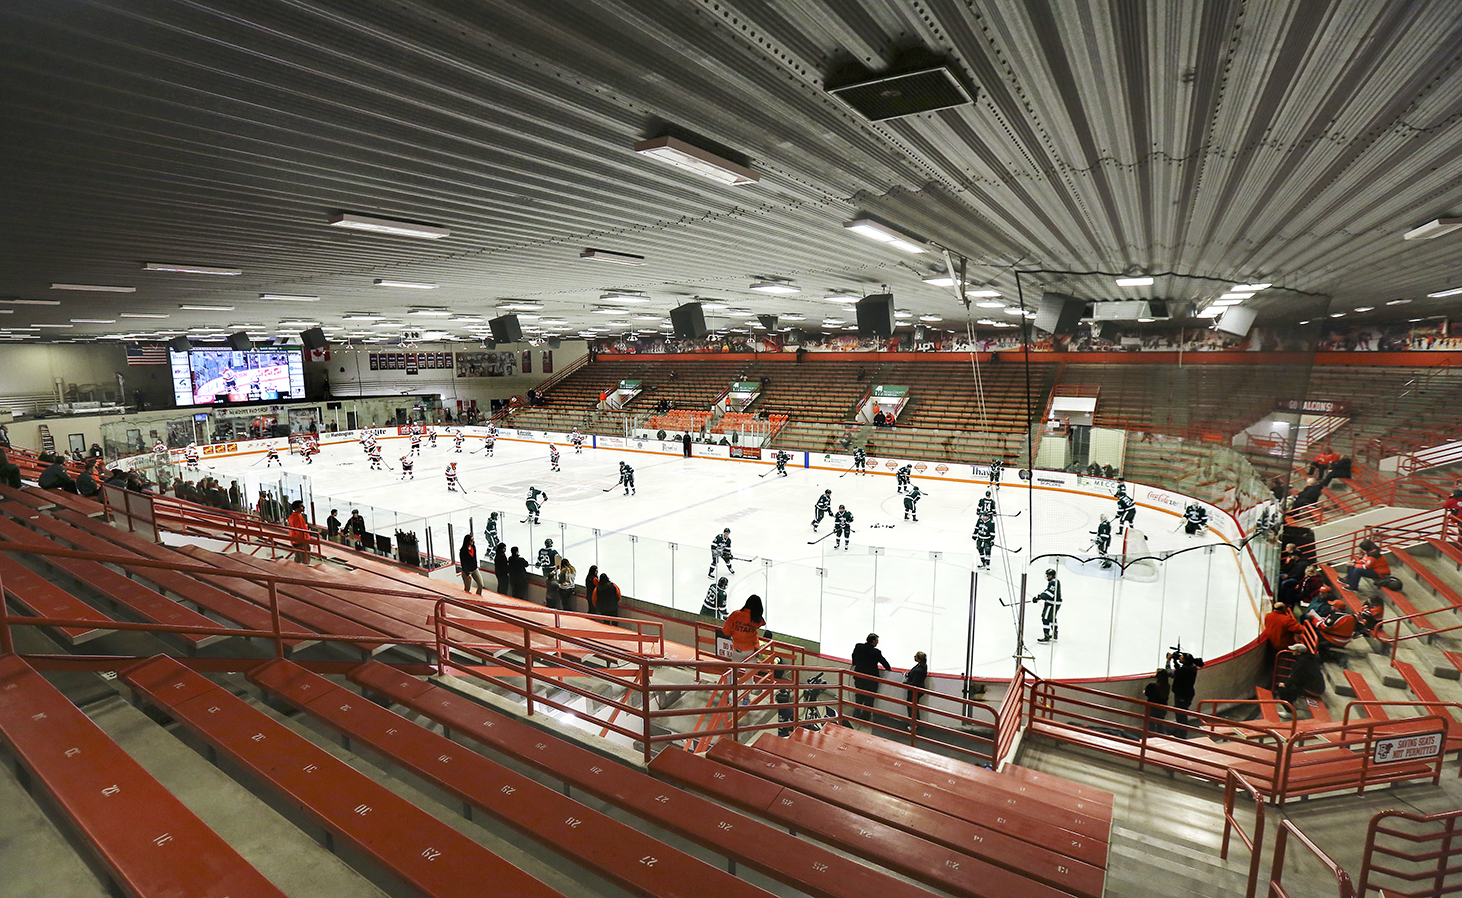 Michigan State Campus >> Why the NHL should come to Bowling Green - The Blade